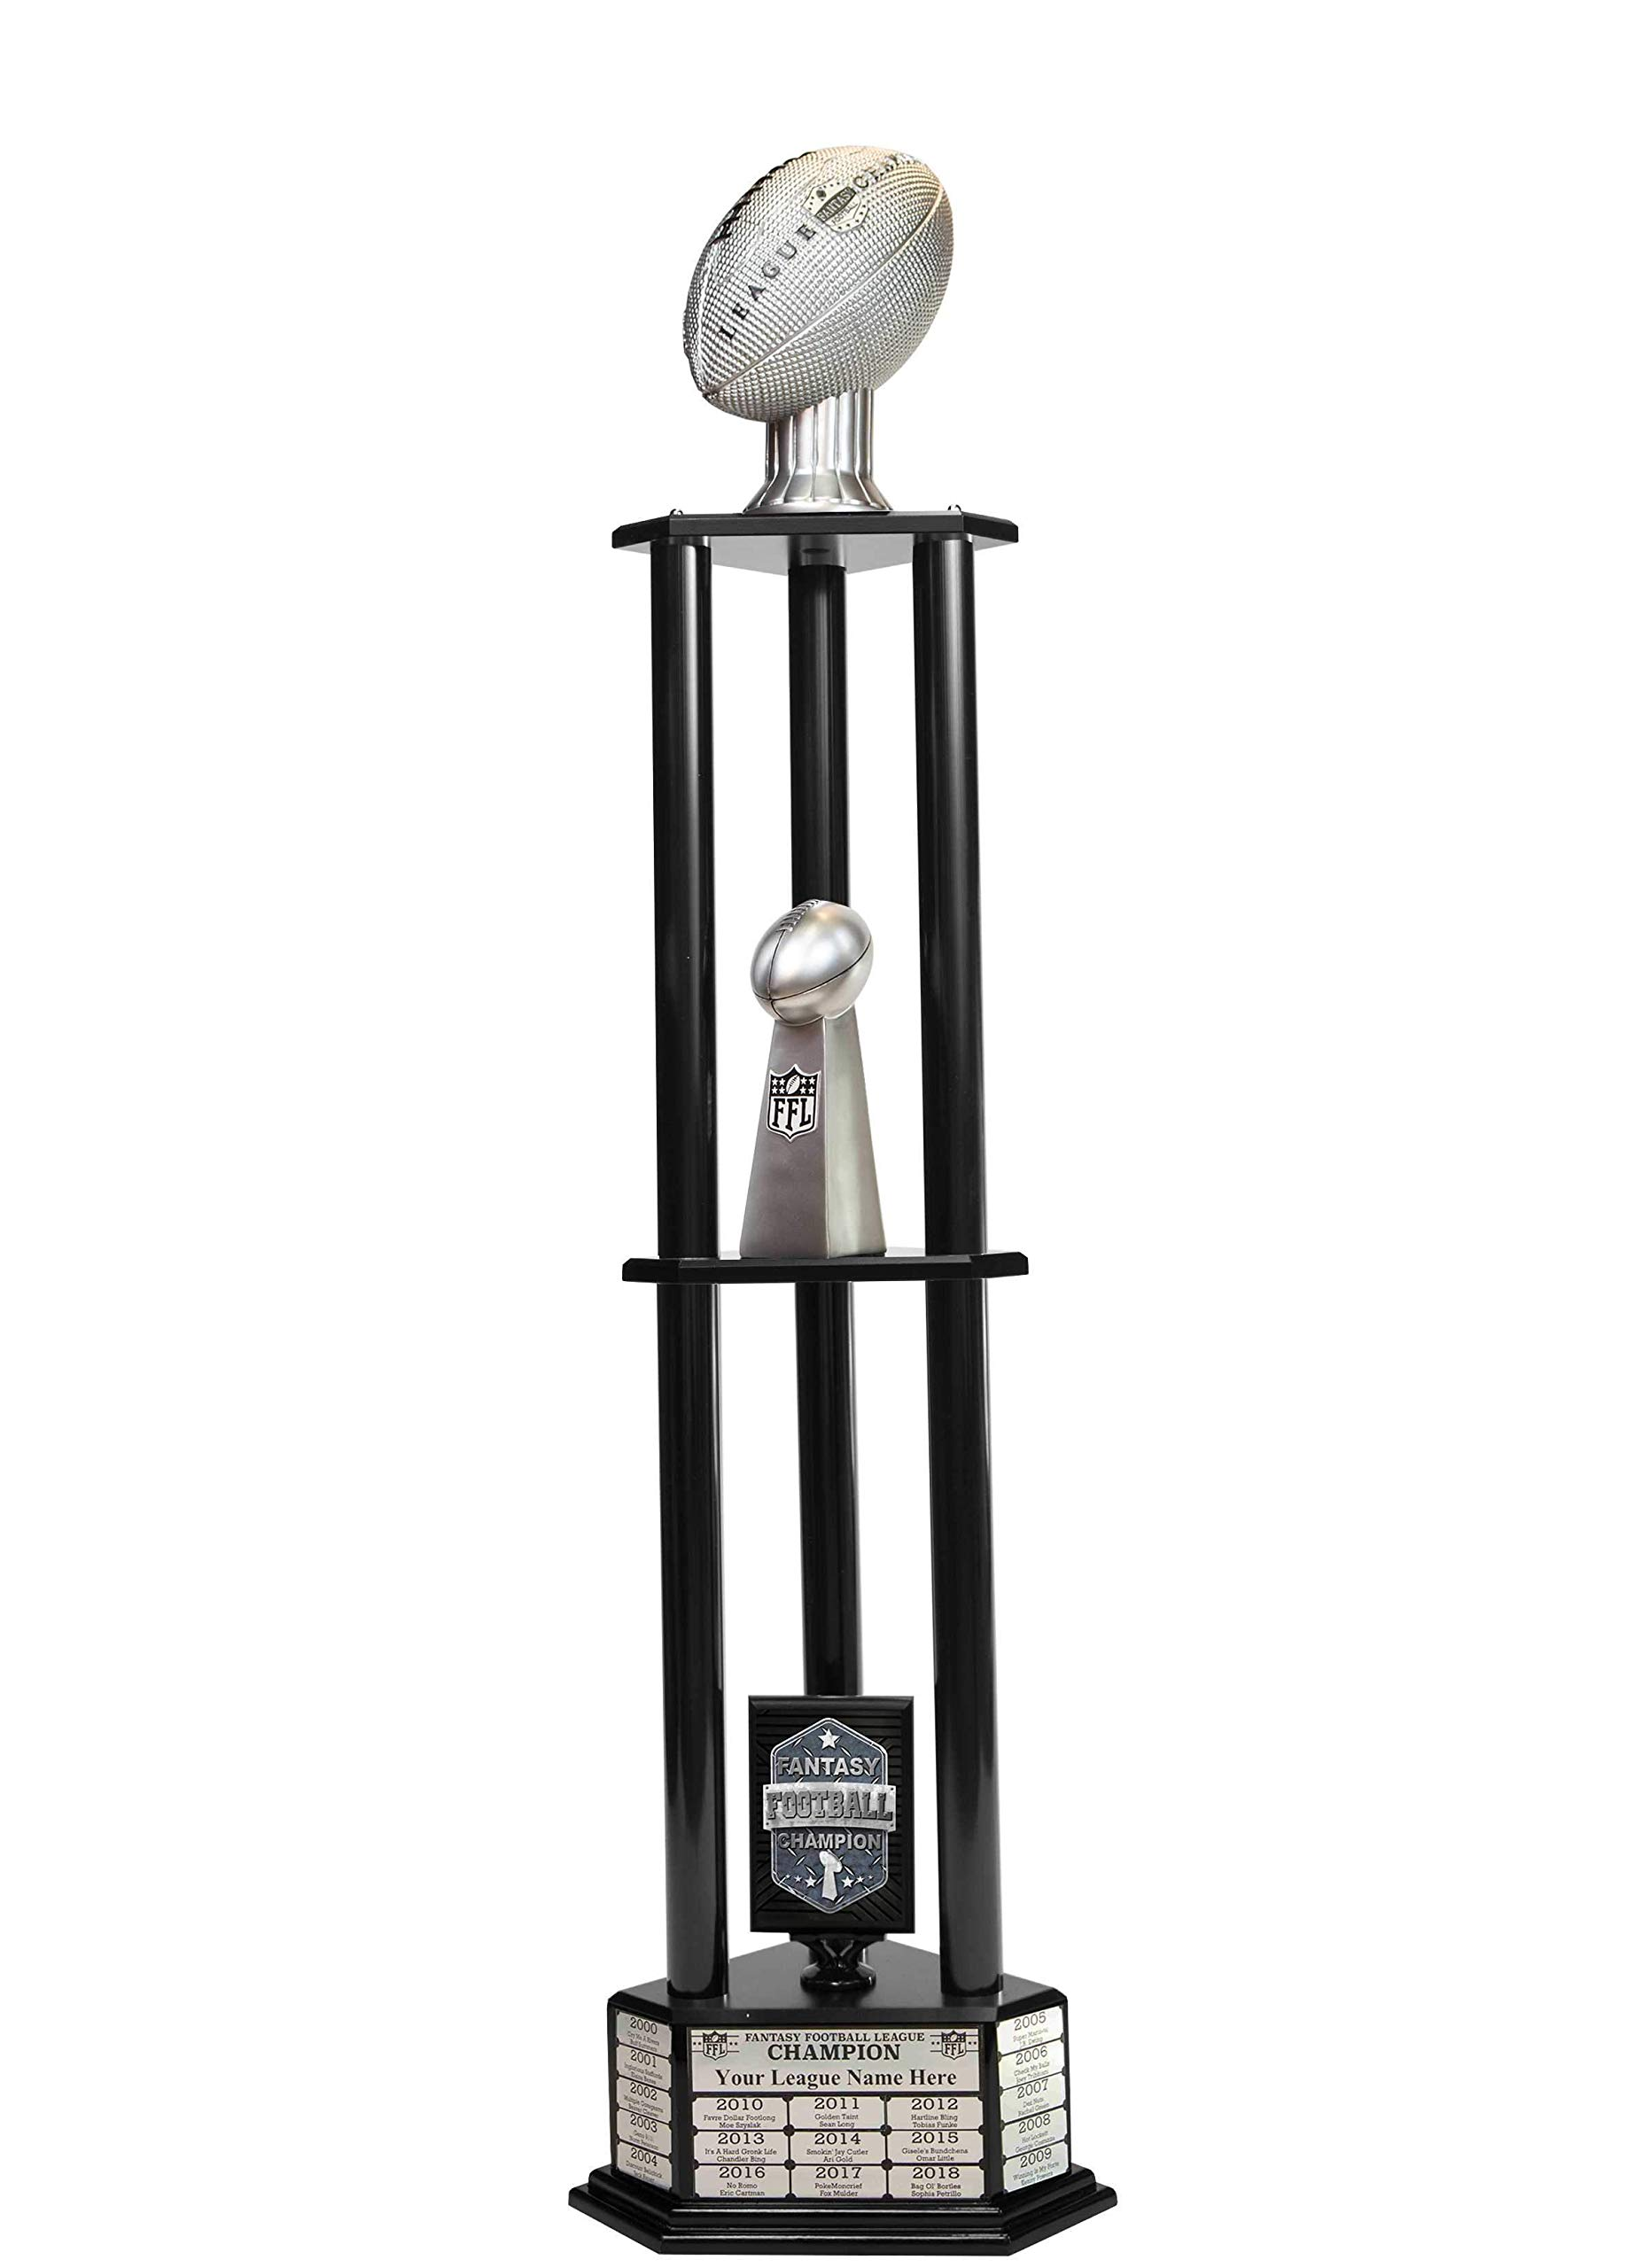 Customizable 56'' Fantasy Football Trophy with Free Engraving for up to 19 Years of Past Winners (Vivid Silver, Black Columns) by TrophySmack